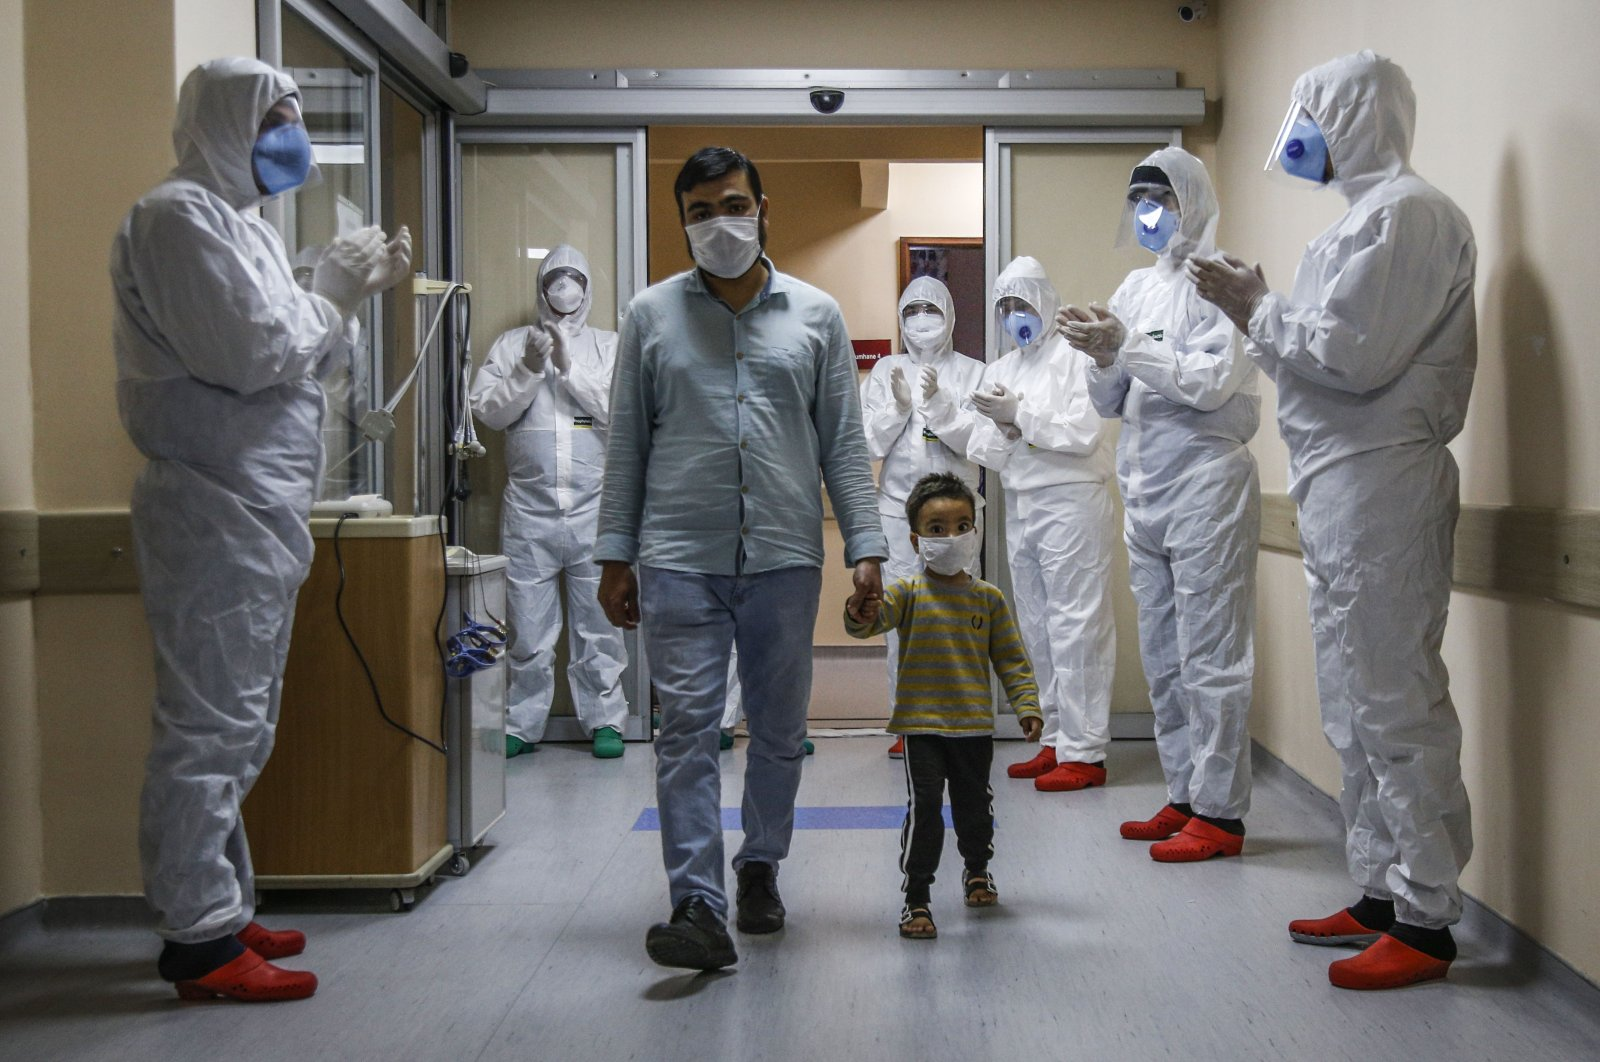 Medical staff cheers as the toddler leaves the hospital following his COVID-19 treatment, Hatay, Turkey, April 21, 2020. (AA Photo)